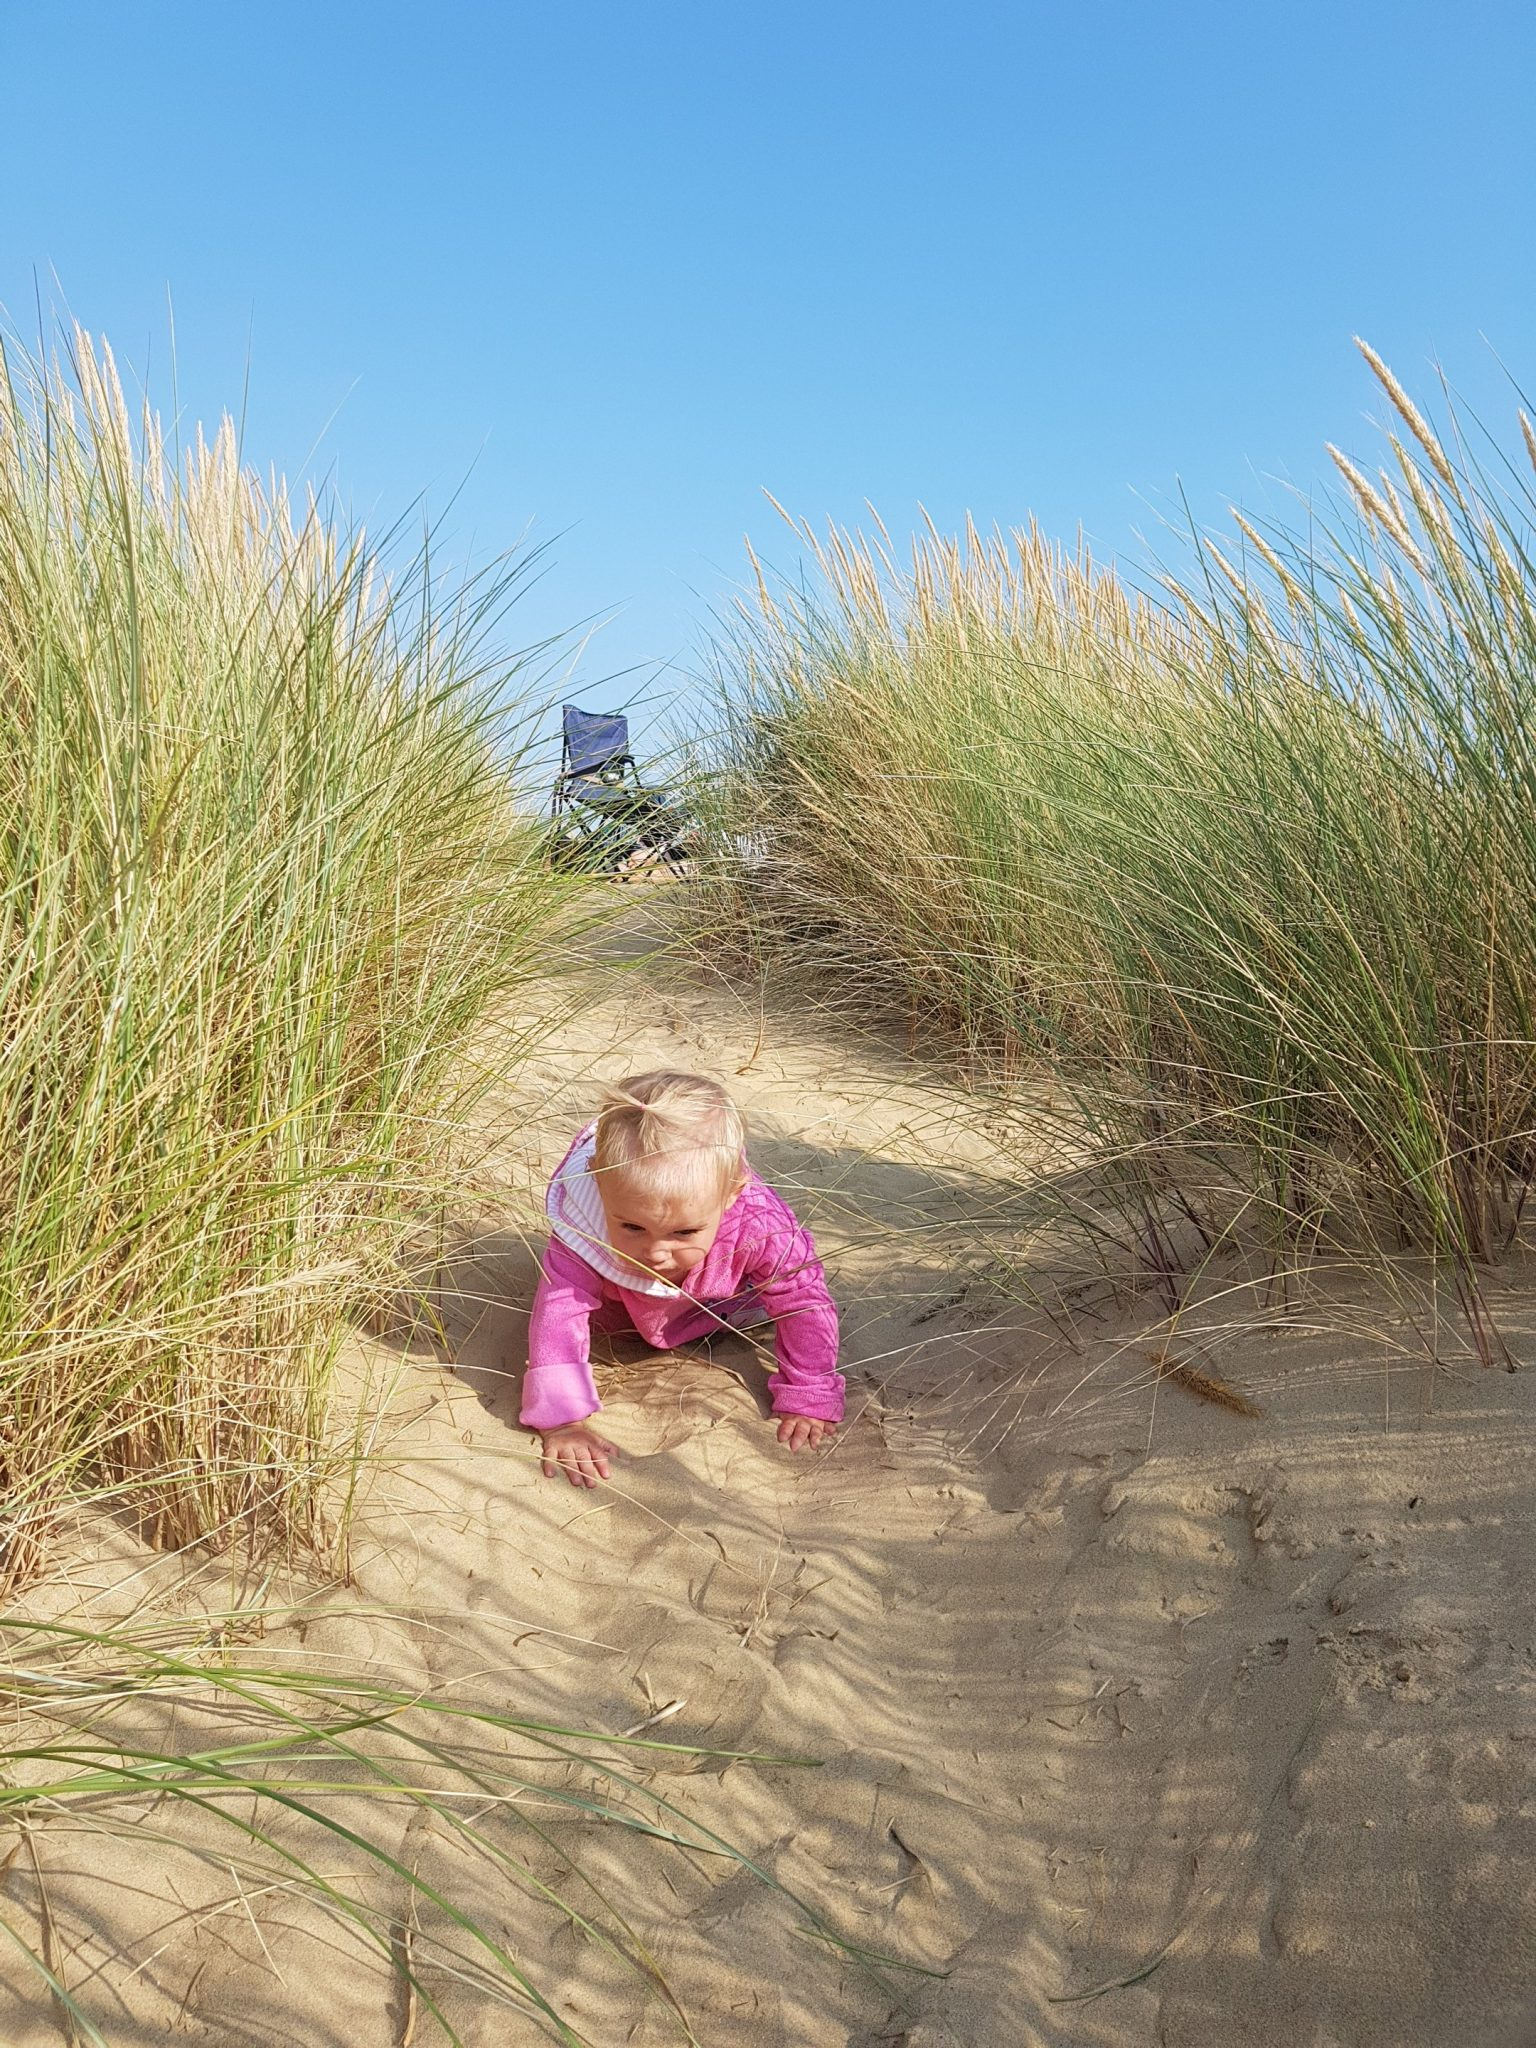 little girl in pink crawling in sand dunes